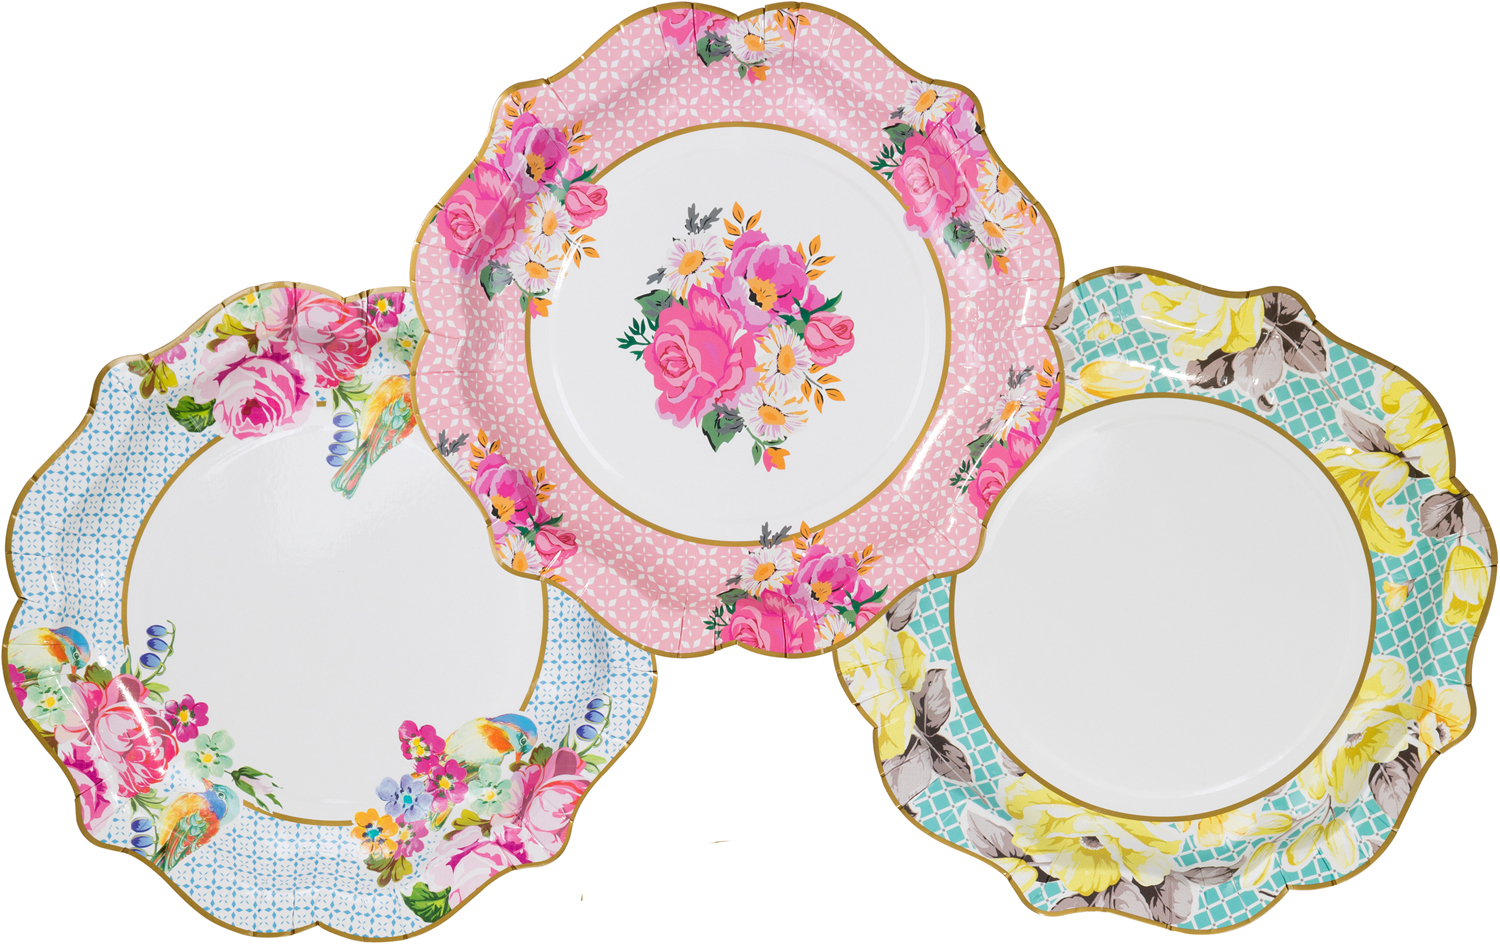 12 Luxury Vintage Style Afternoon Tea Medium paper Plates Shabby Chic 3 designs  sc 1 st  eBay : retro paper plates - pezcame.com